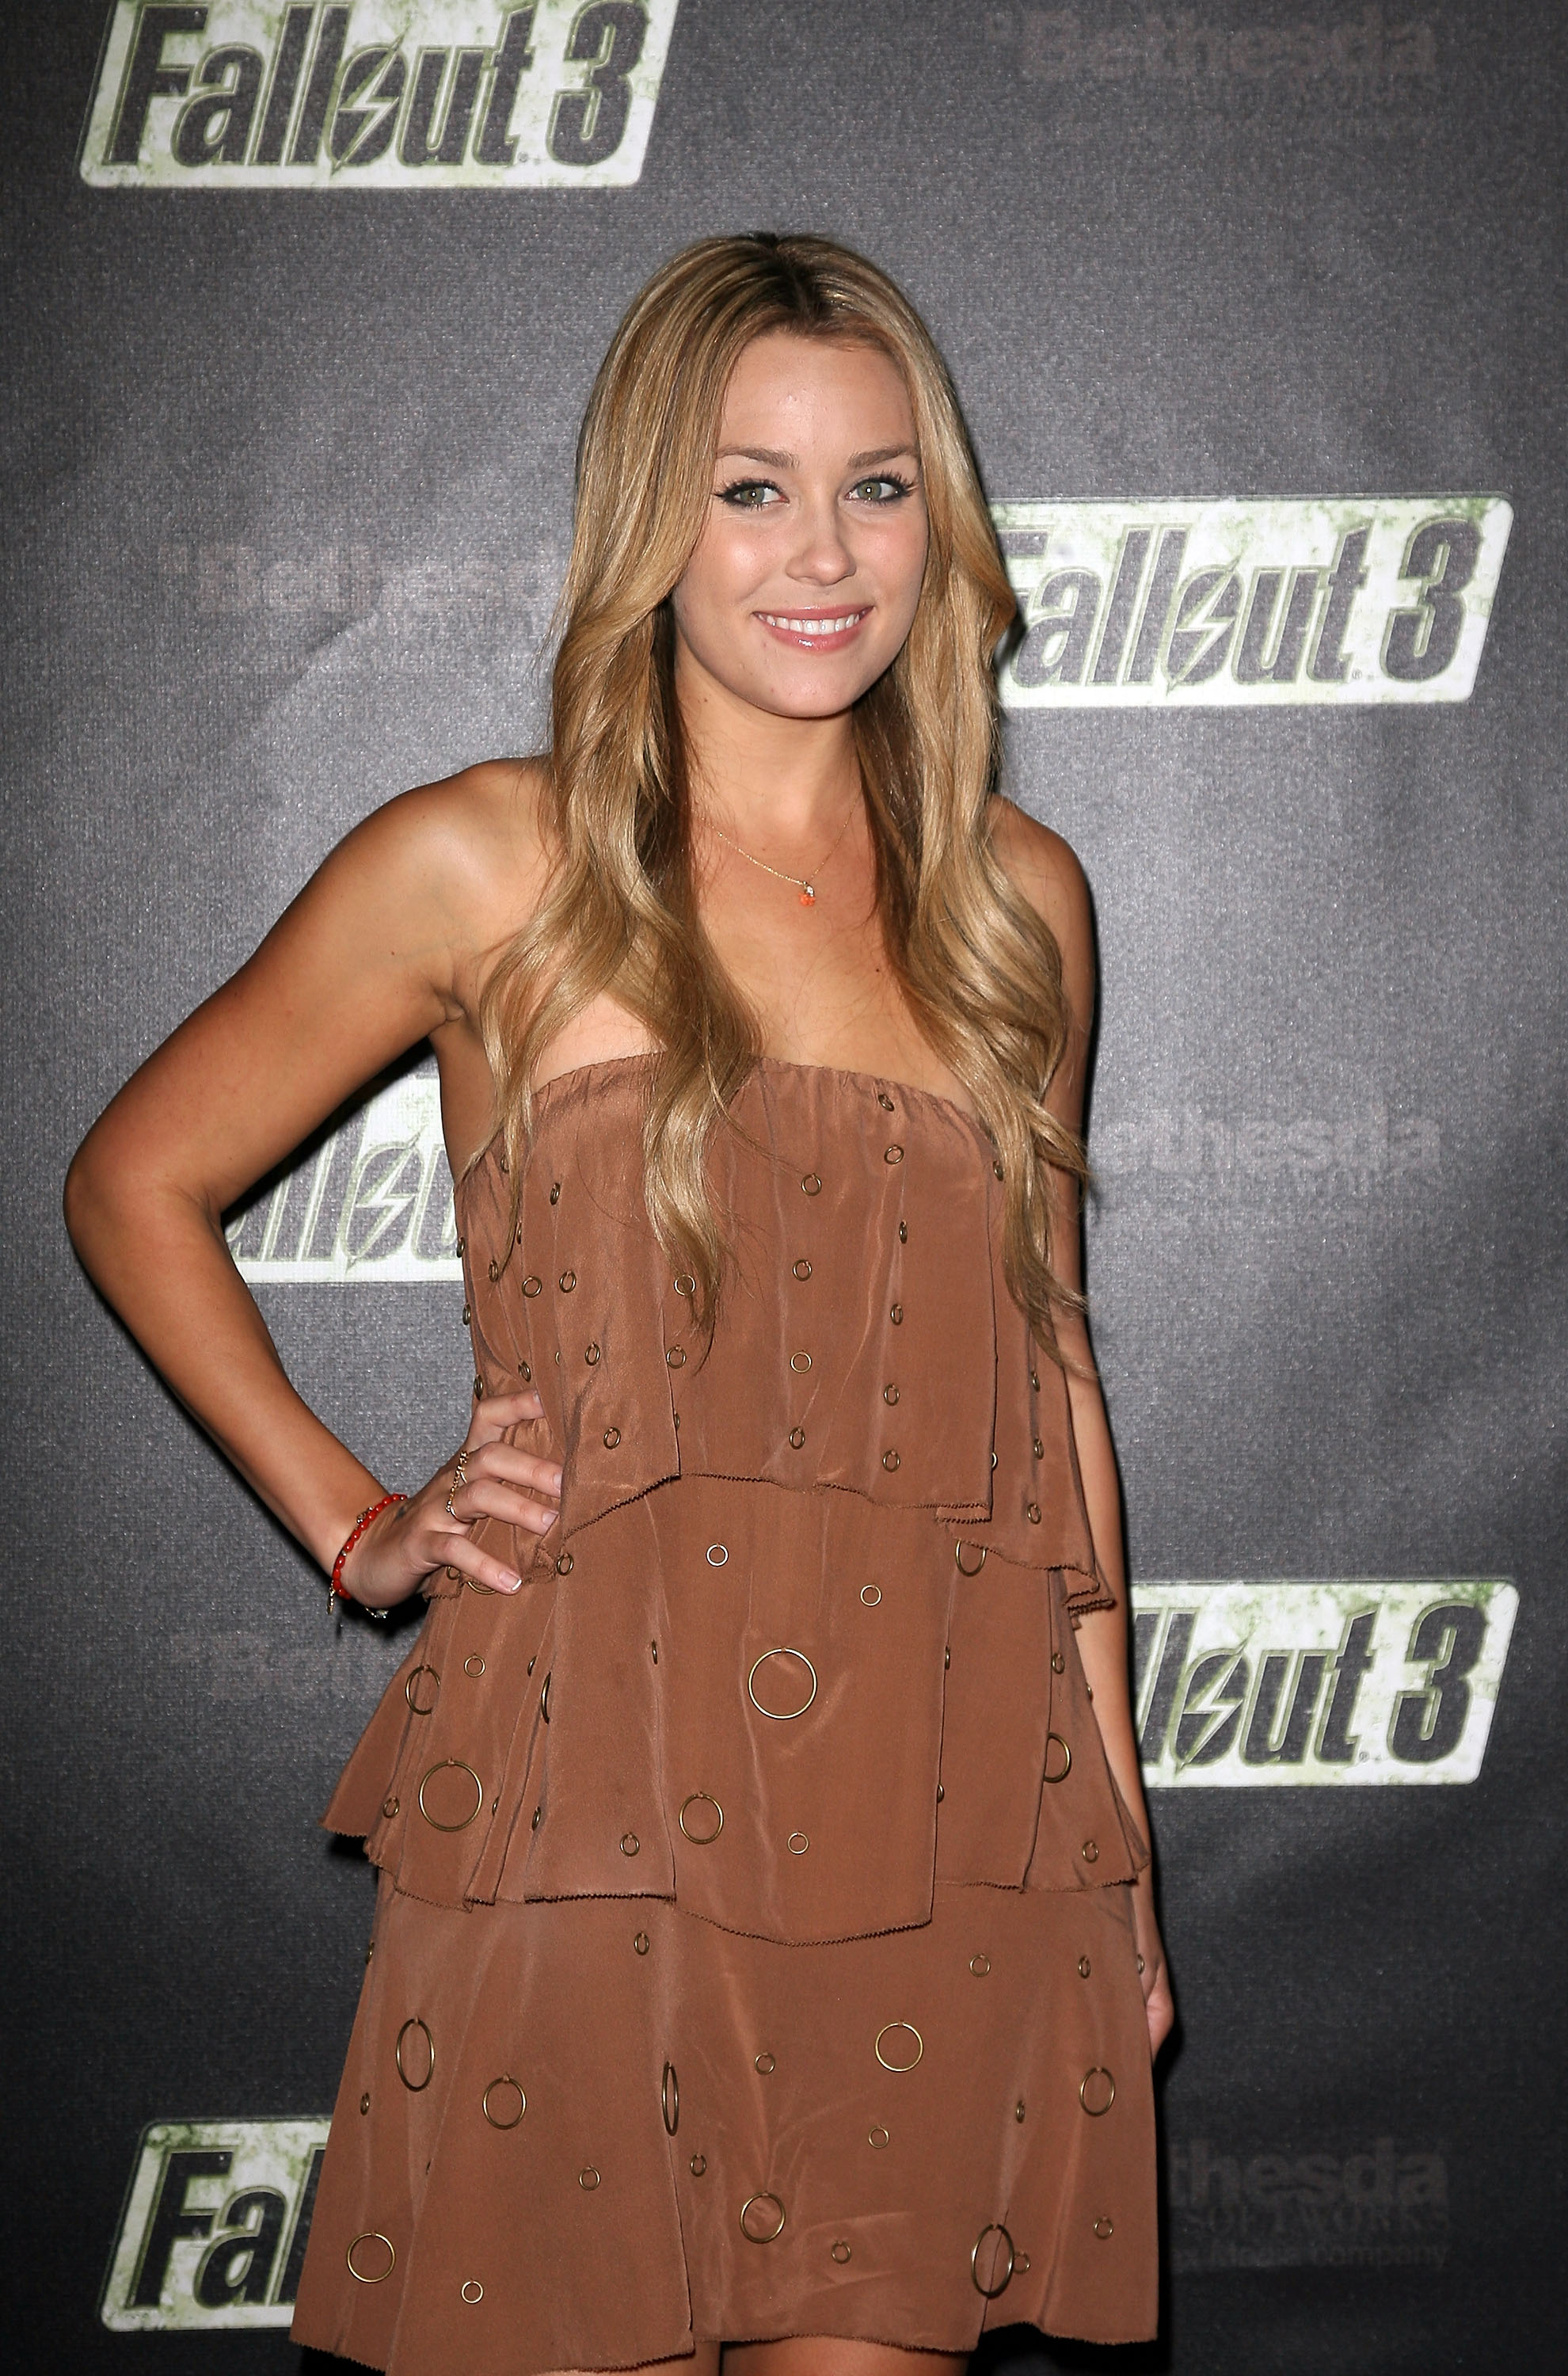 55734_Celebutopia-Lauren_Conrad-Launch_Party_for_Fallout_3_videogame-12_122_938lo.jpg